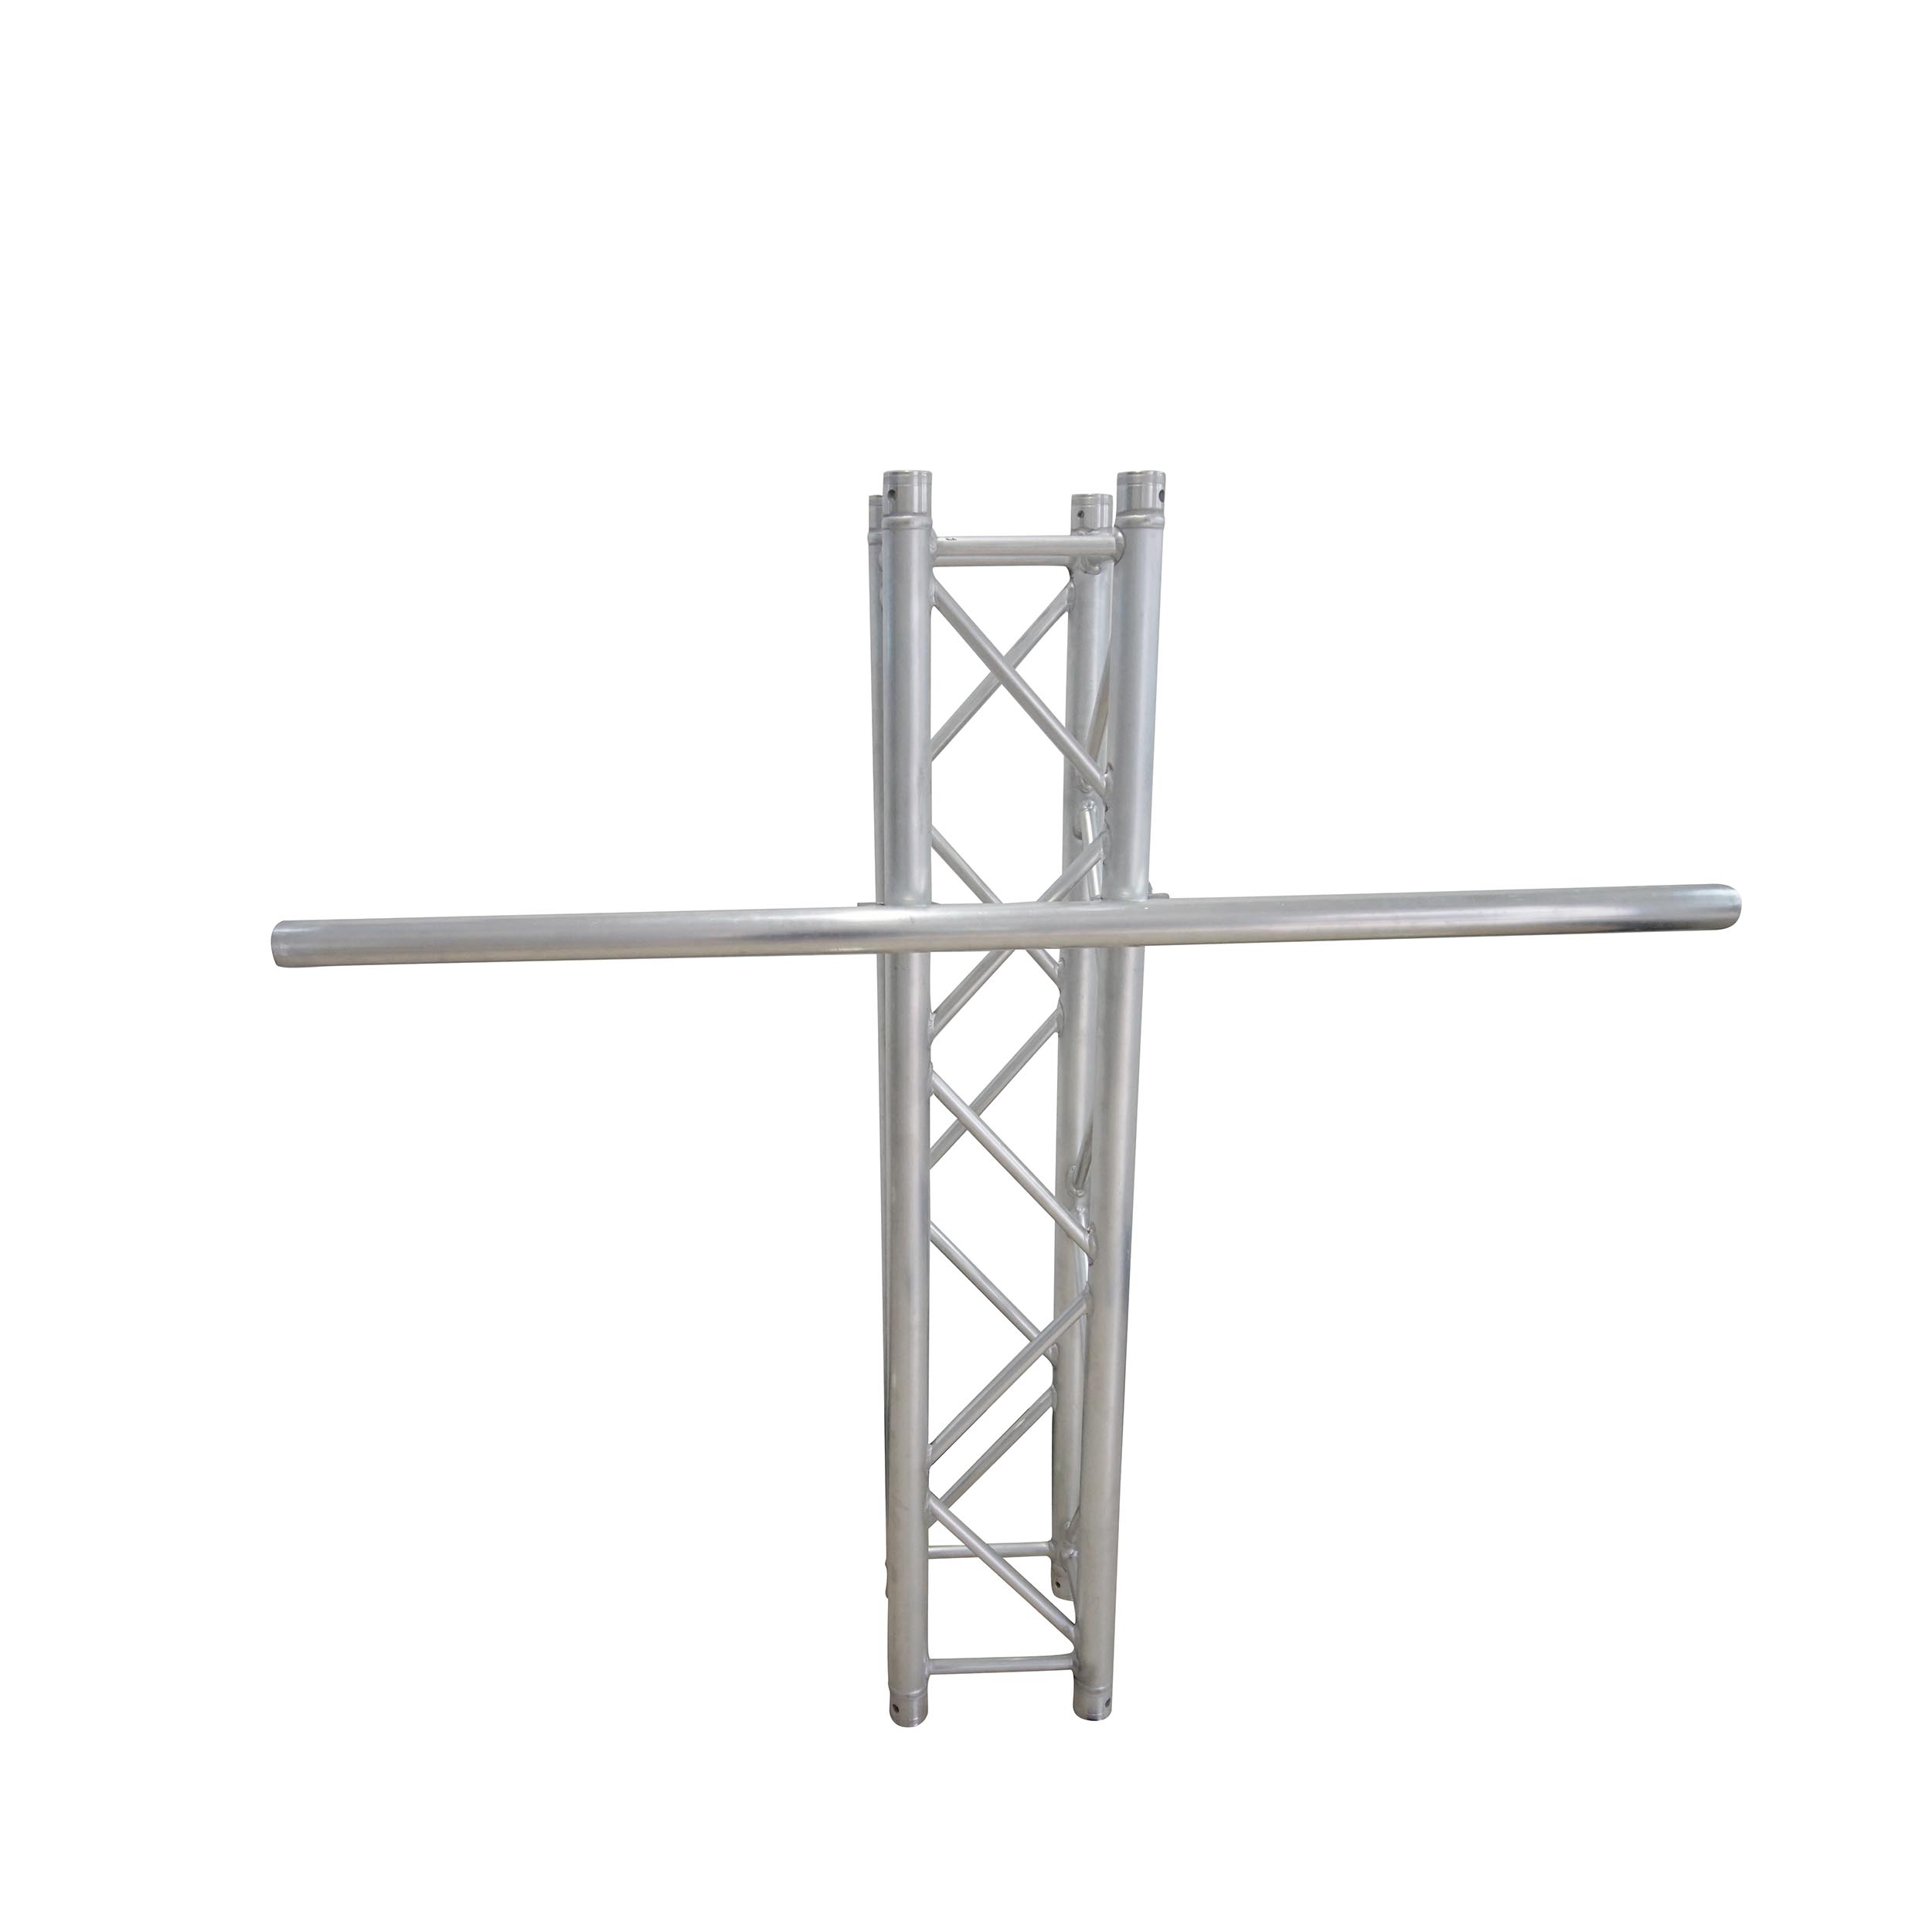 60 Pole W Dual Welded Clamps